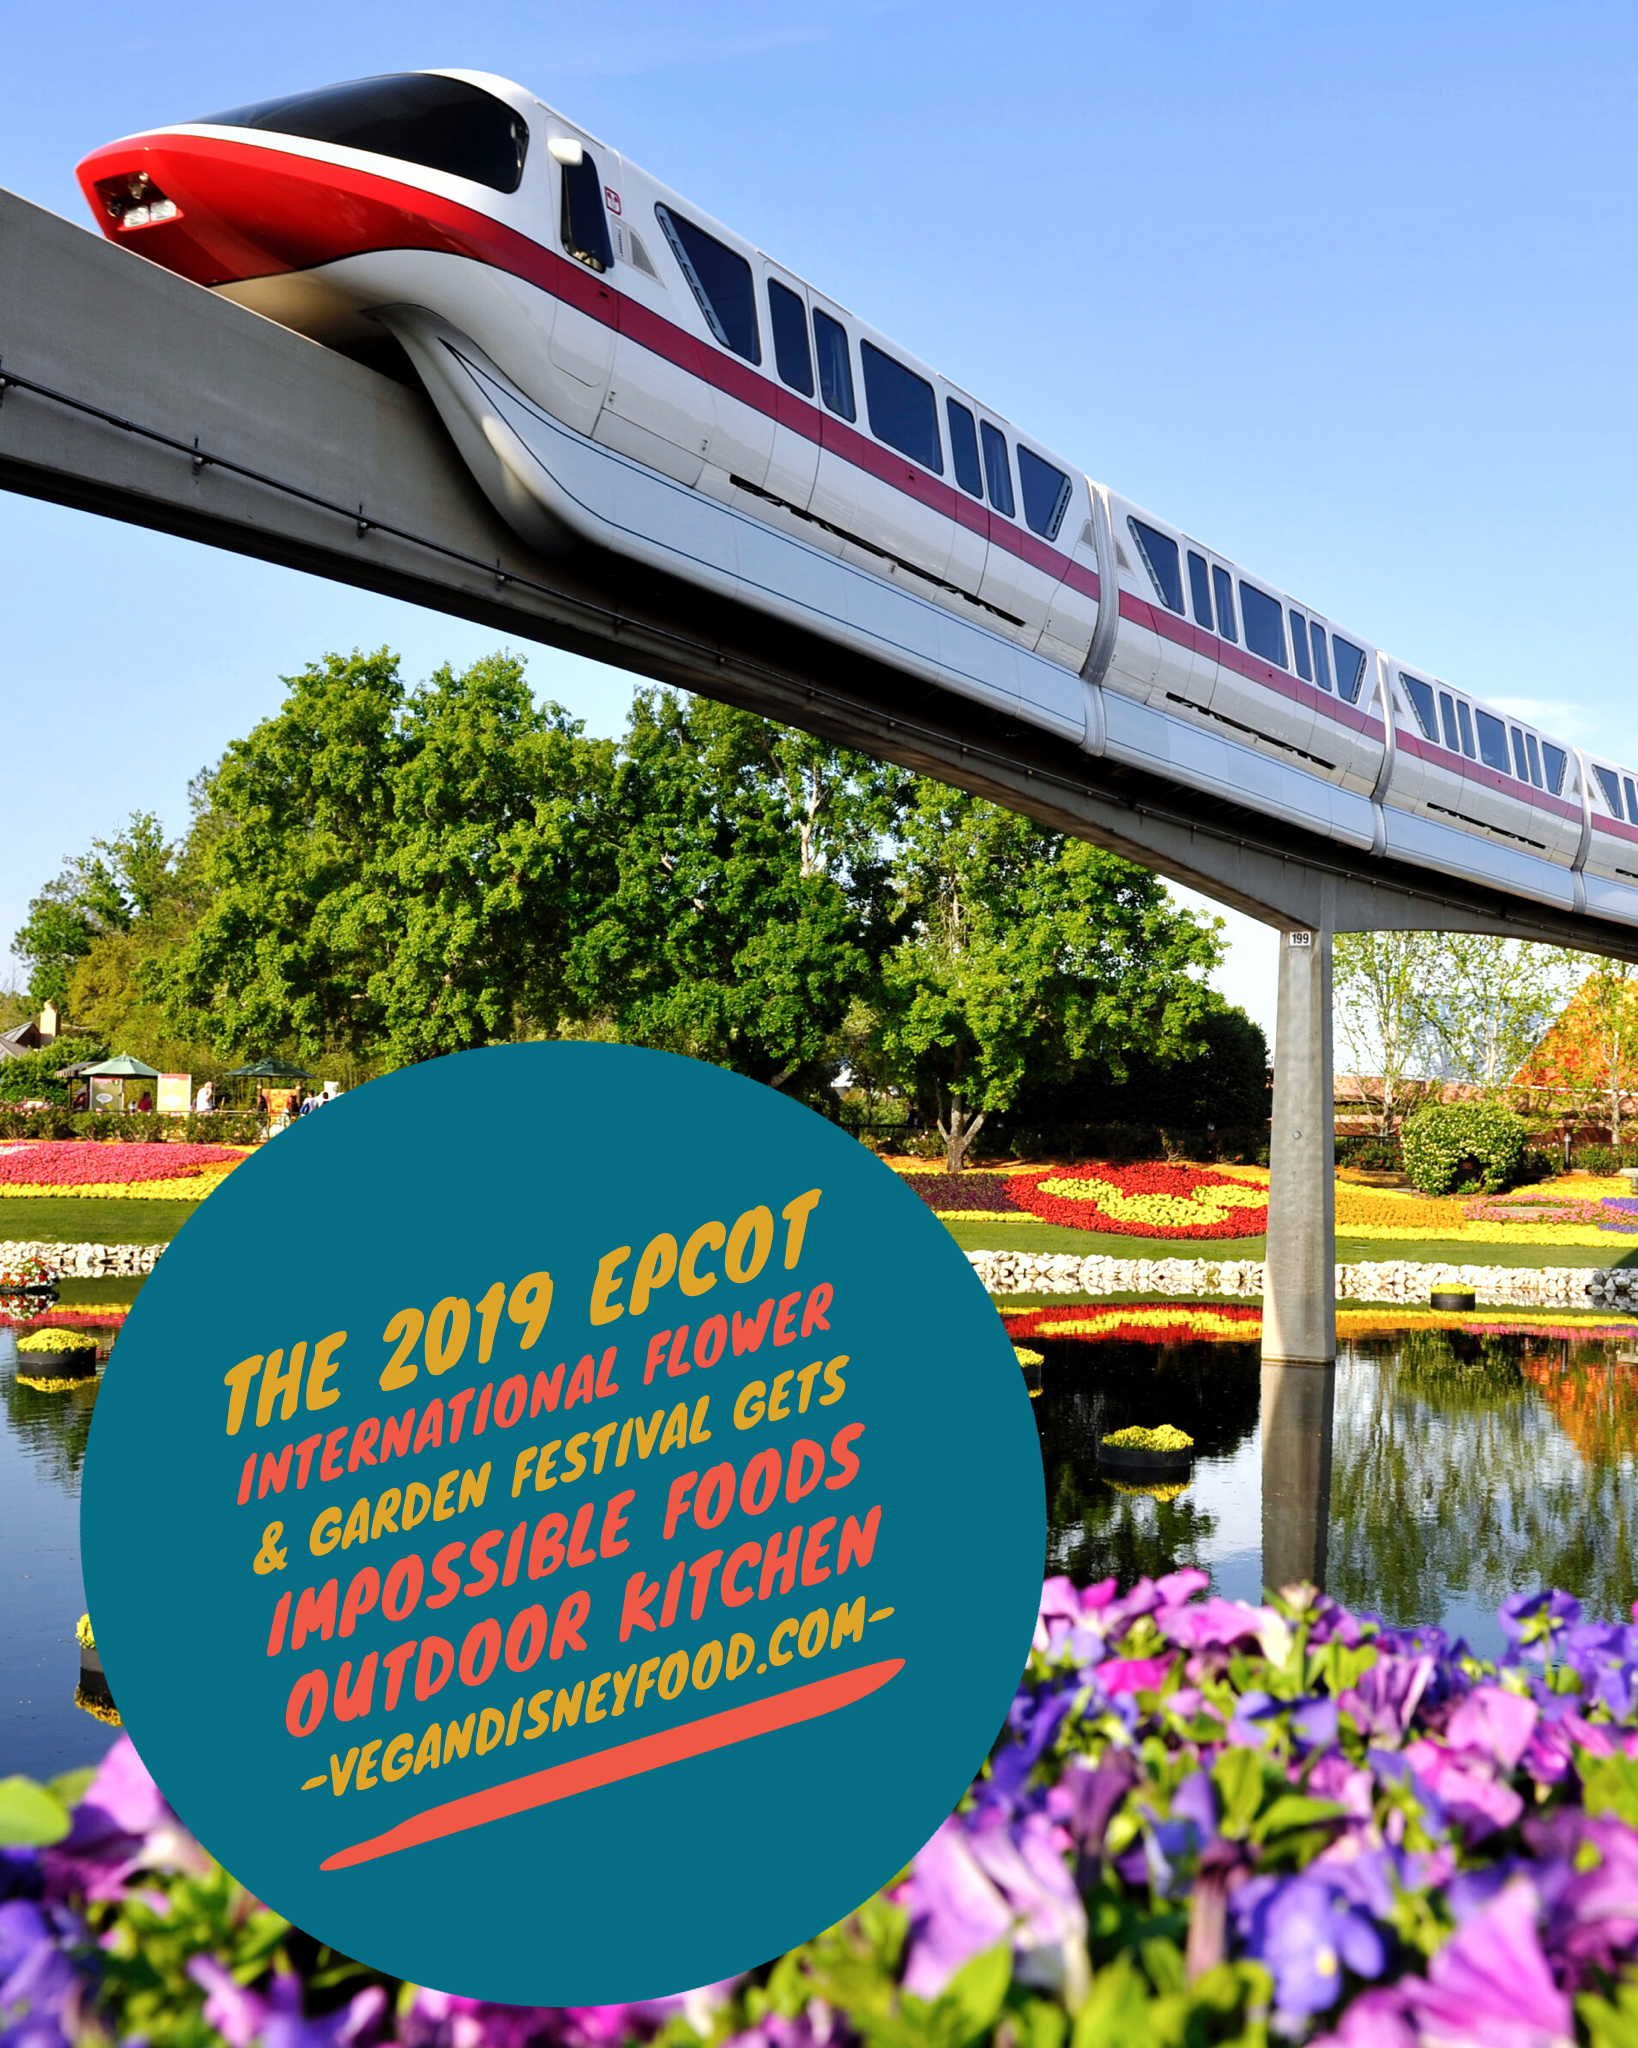 The 2019 Epcot International Flower & Garden Festival Gets Impossible Foods Outdoor Kitchen